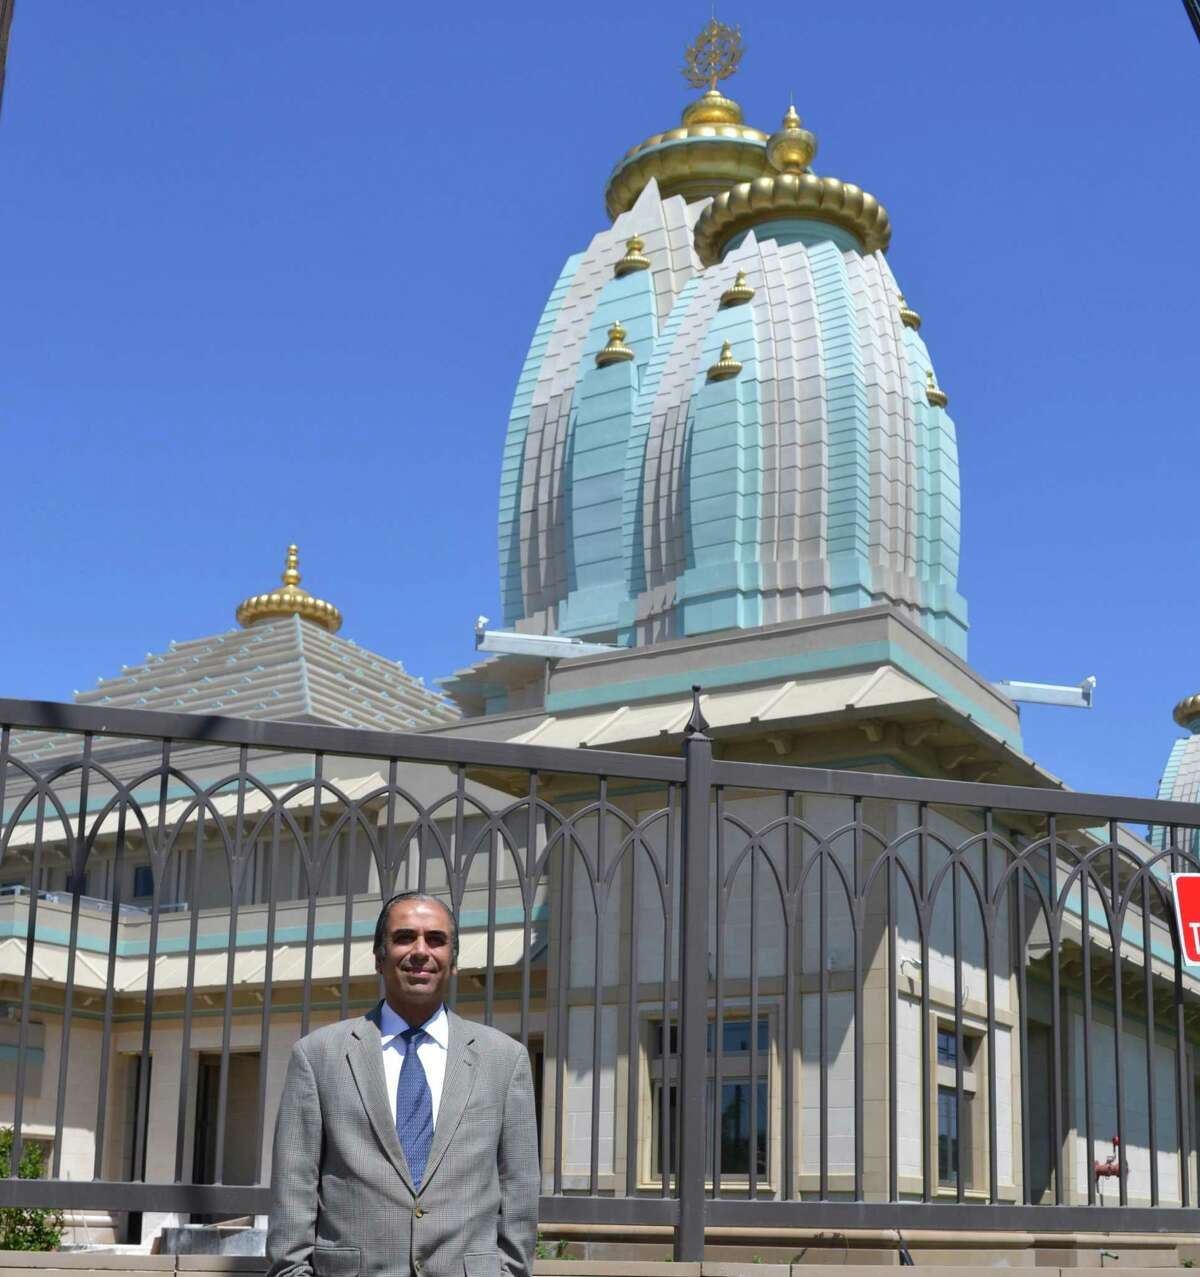 Dr. Sanjay Khanduja, nephew of Dr. Rakesh Kumar Dhingra and the adminis- trator of his estate, recently visted the site of a New Temple built with a $20 million donation from his uncle's estate.